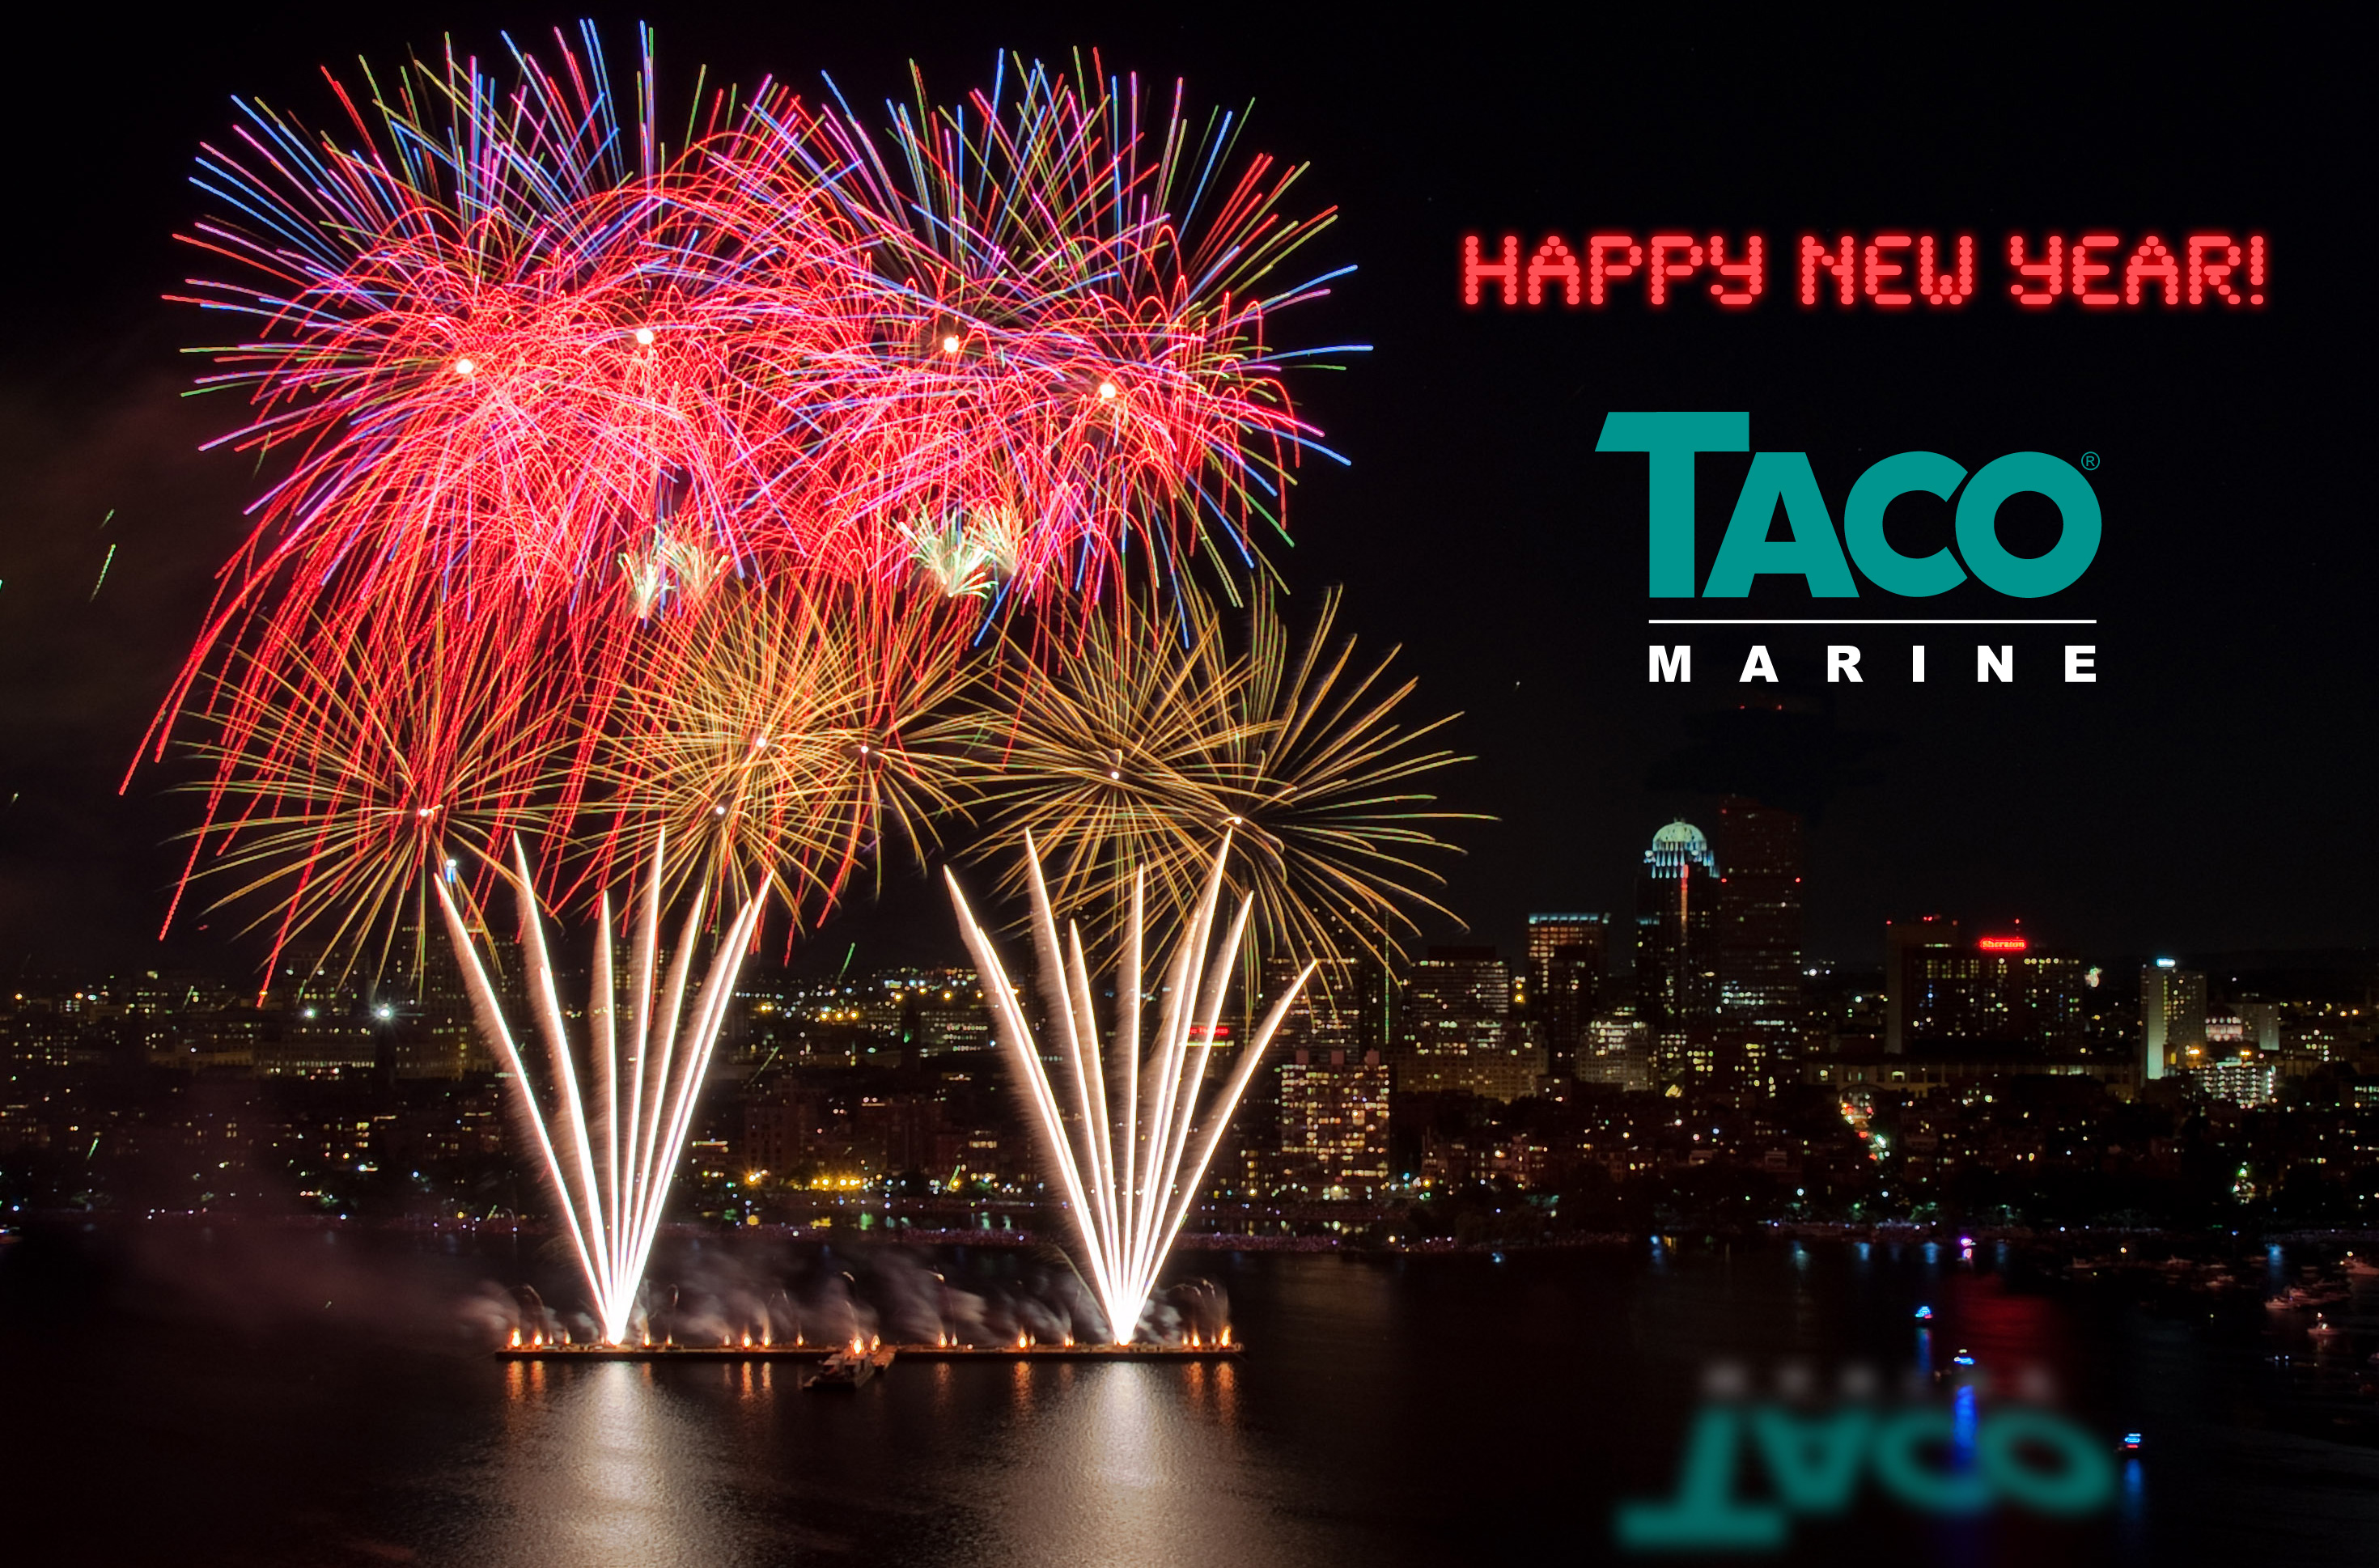 Happy new year from Taco Marine